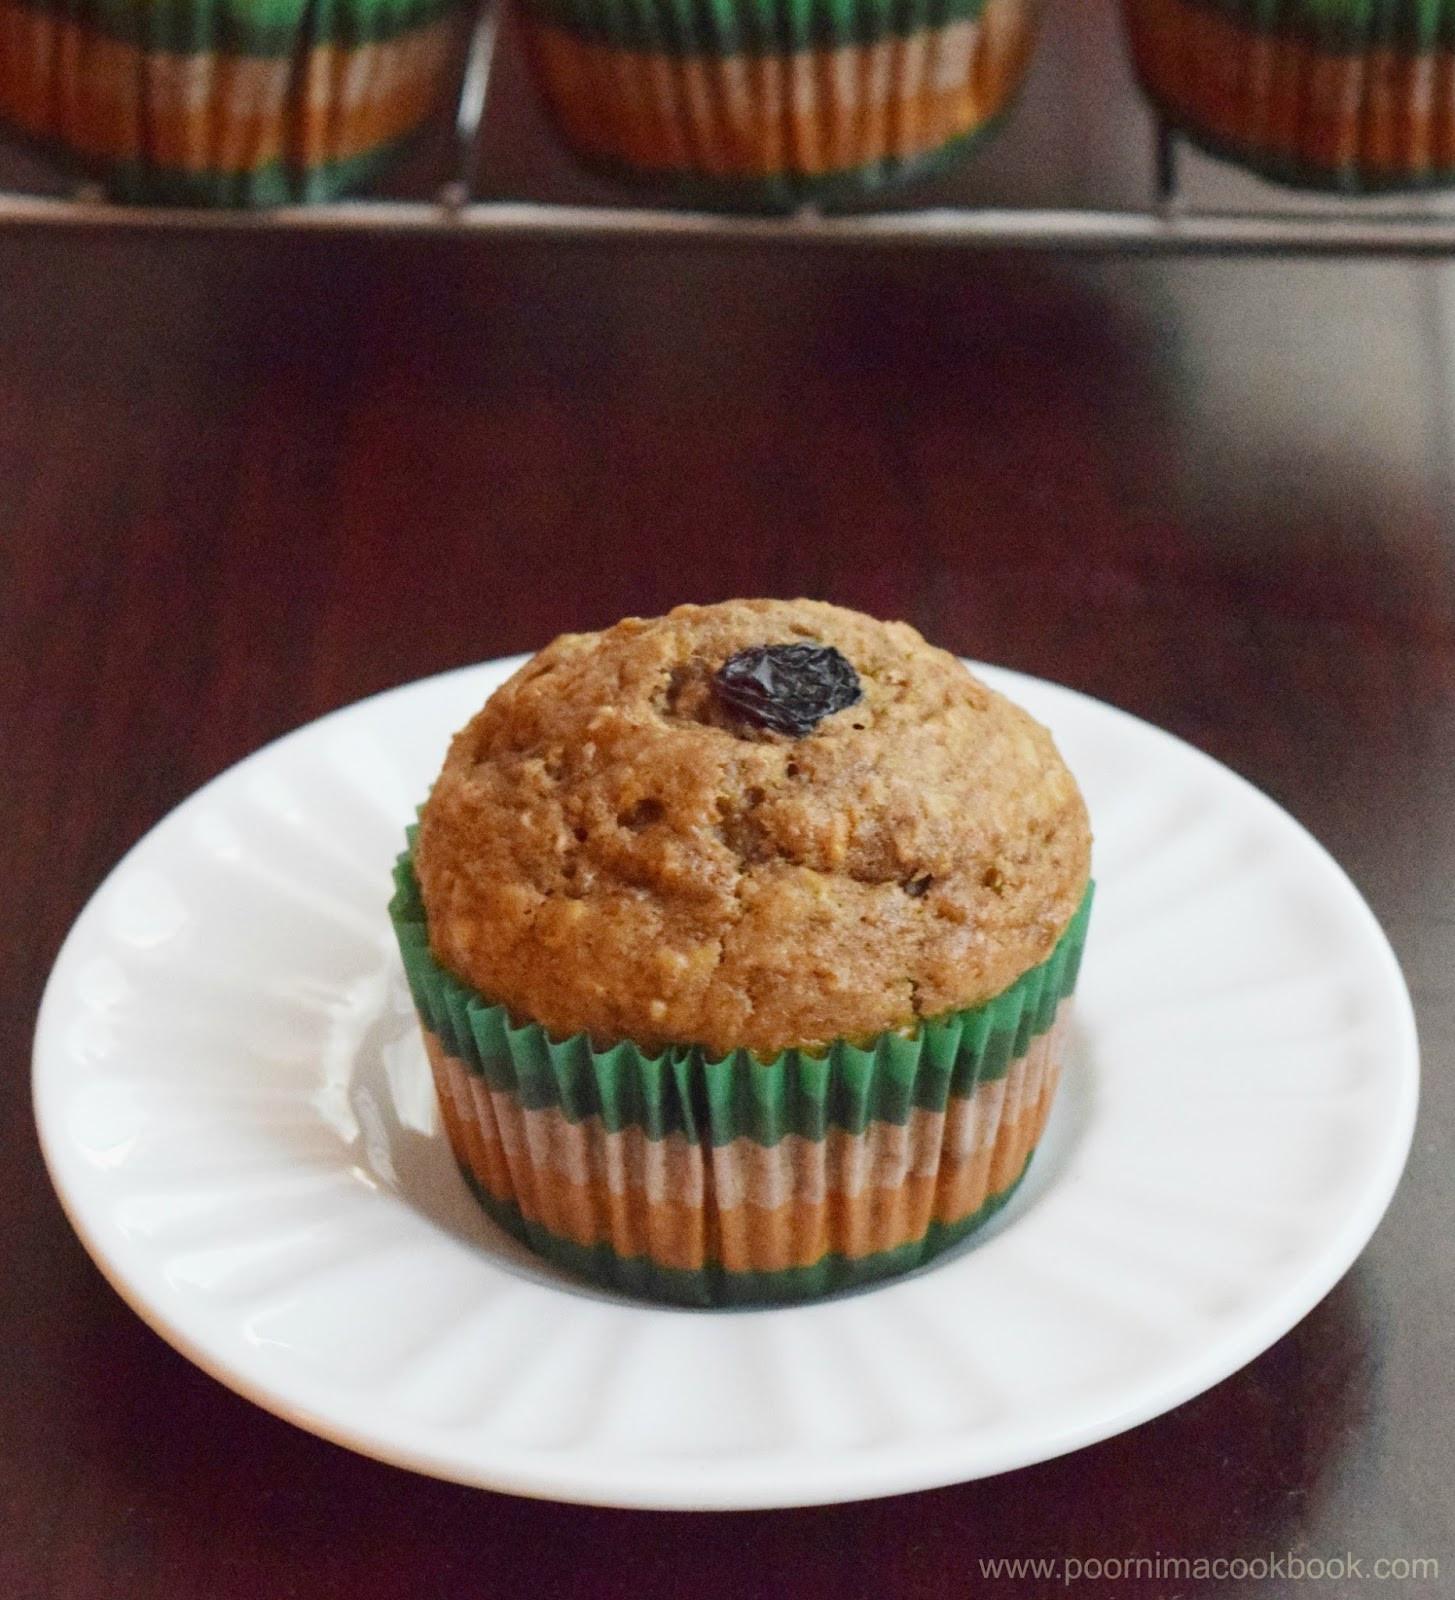 Healthy Muffins For Breakfast  Poornima s Cook Book Healthy Breakfast Muffins